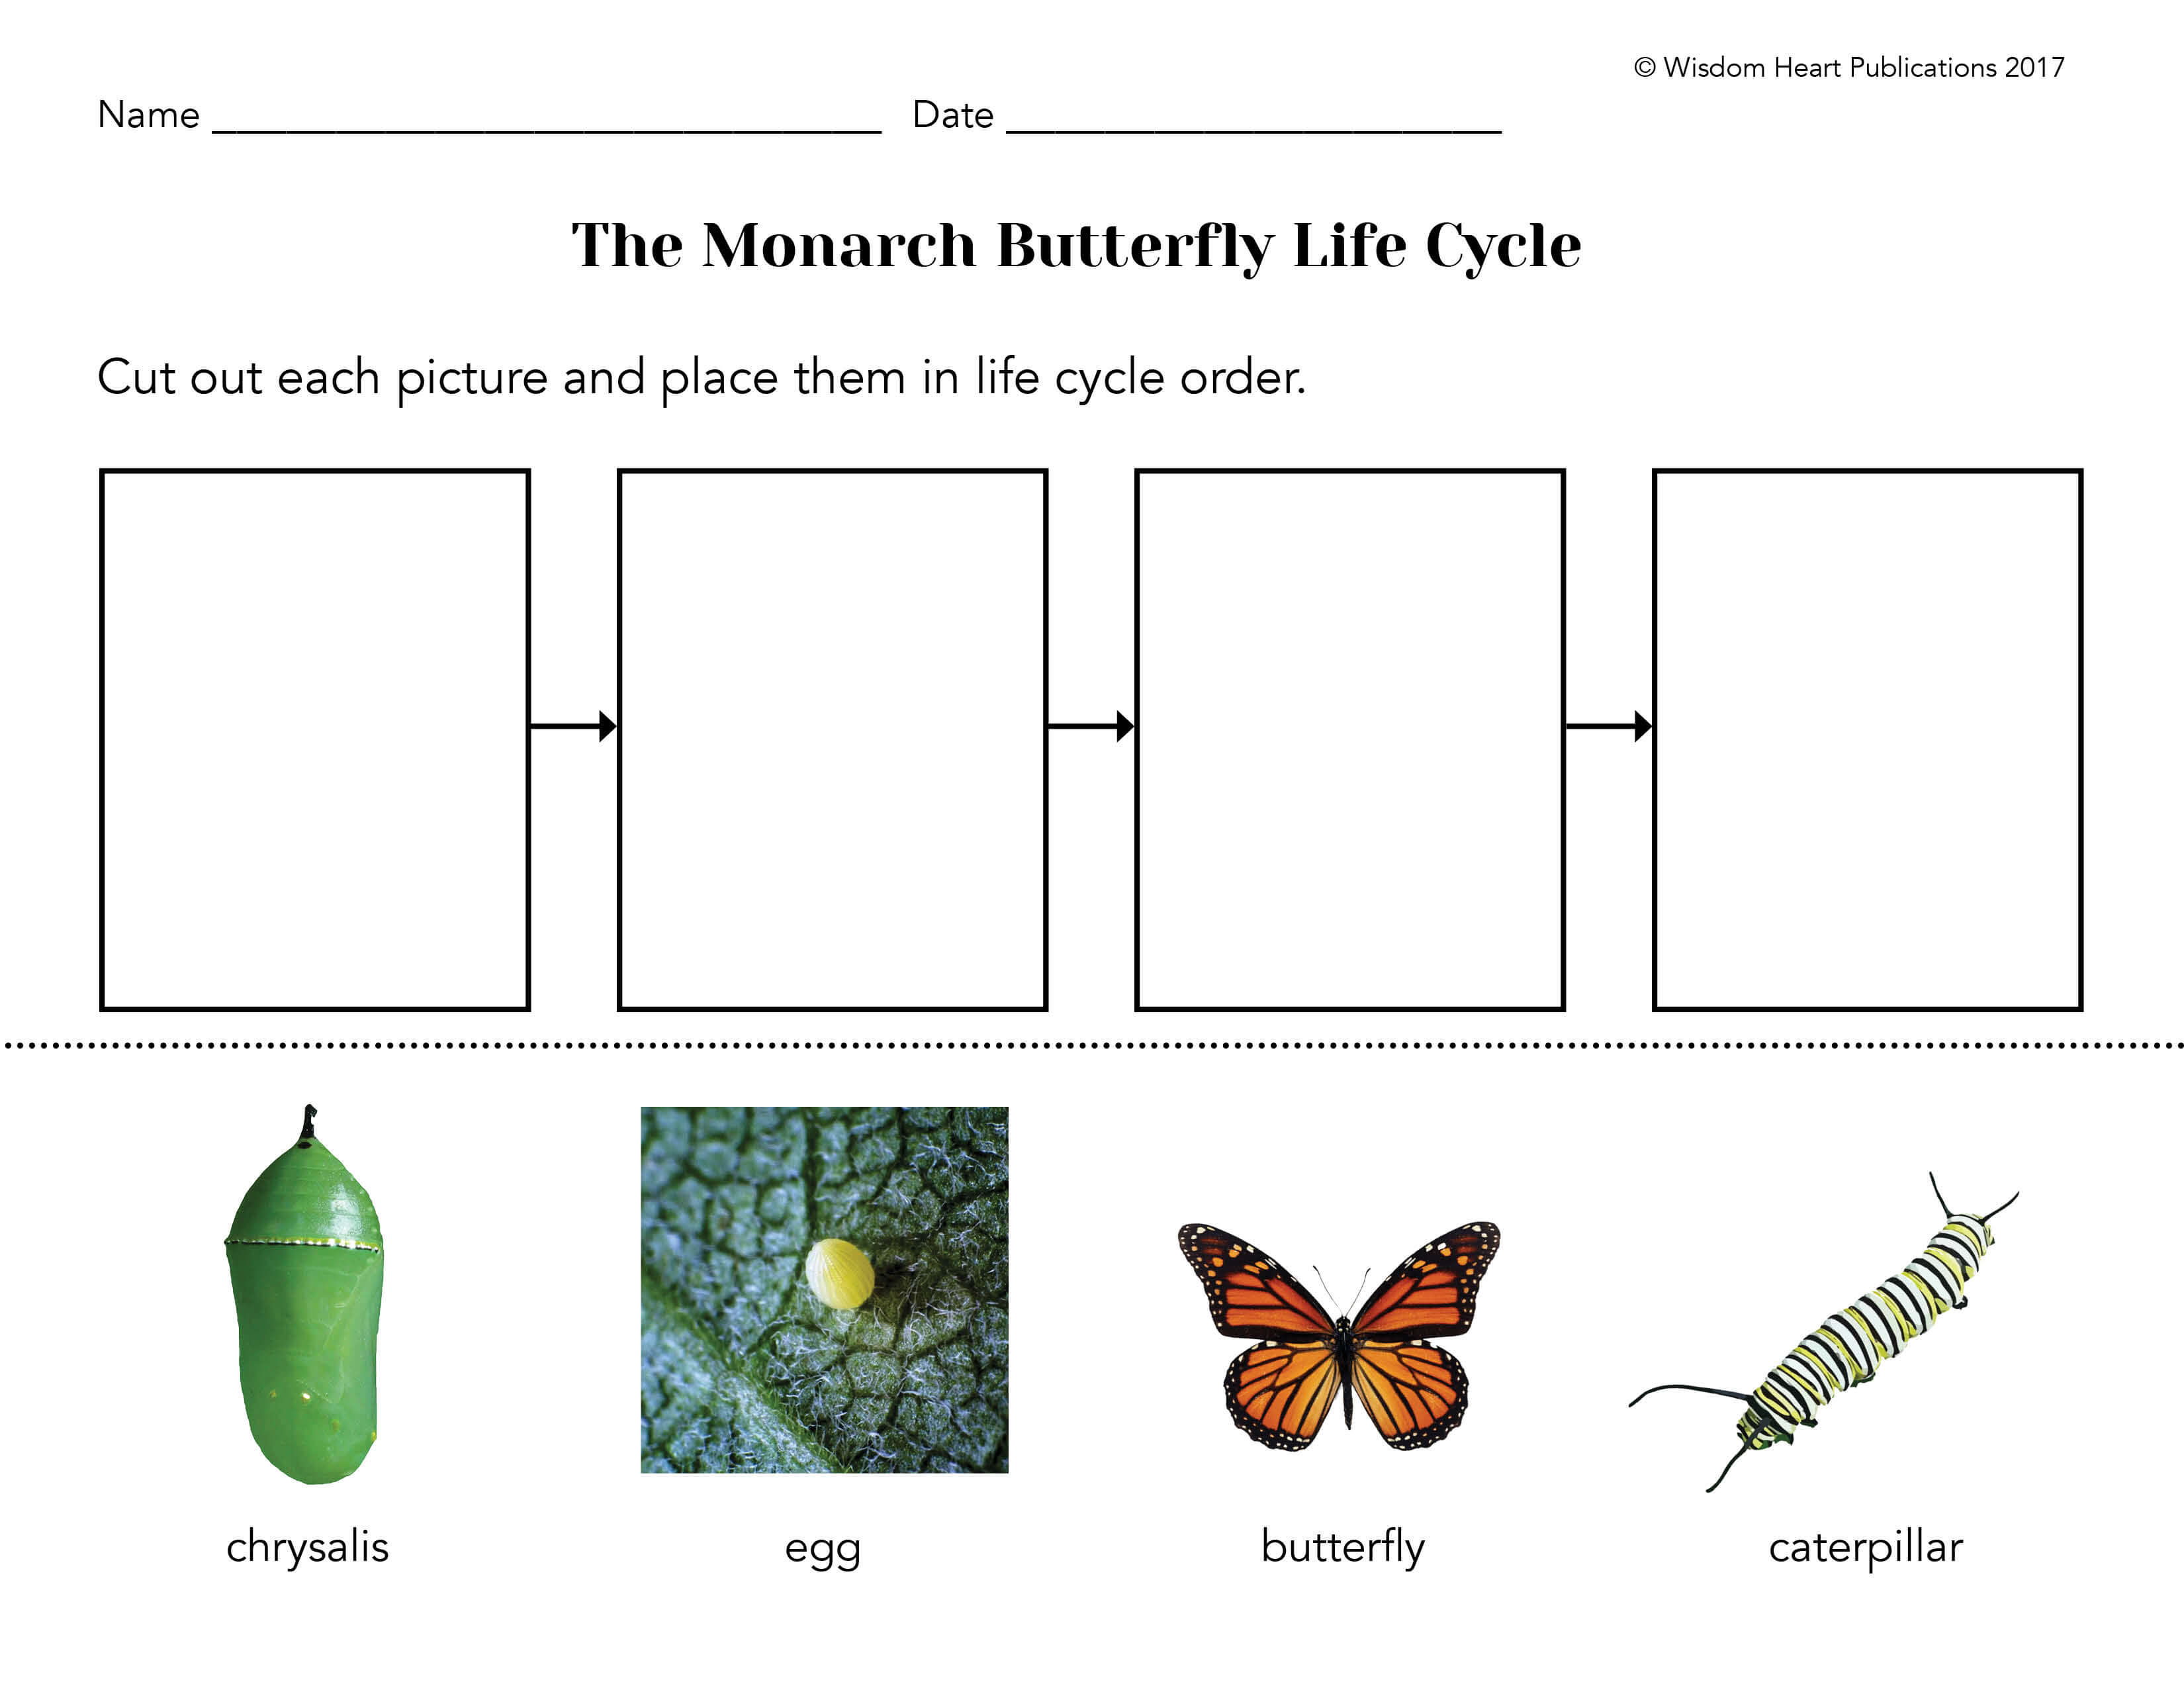 I Am A Butterfly Award Winning Picture Book About Monarch